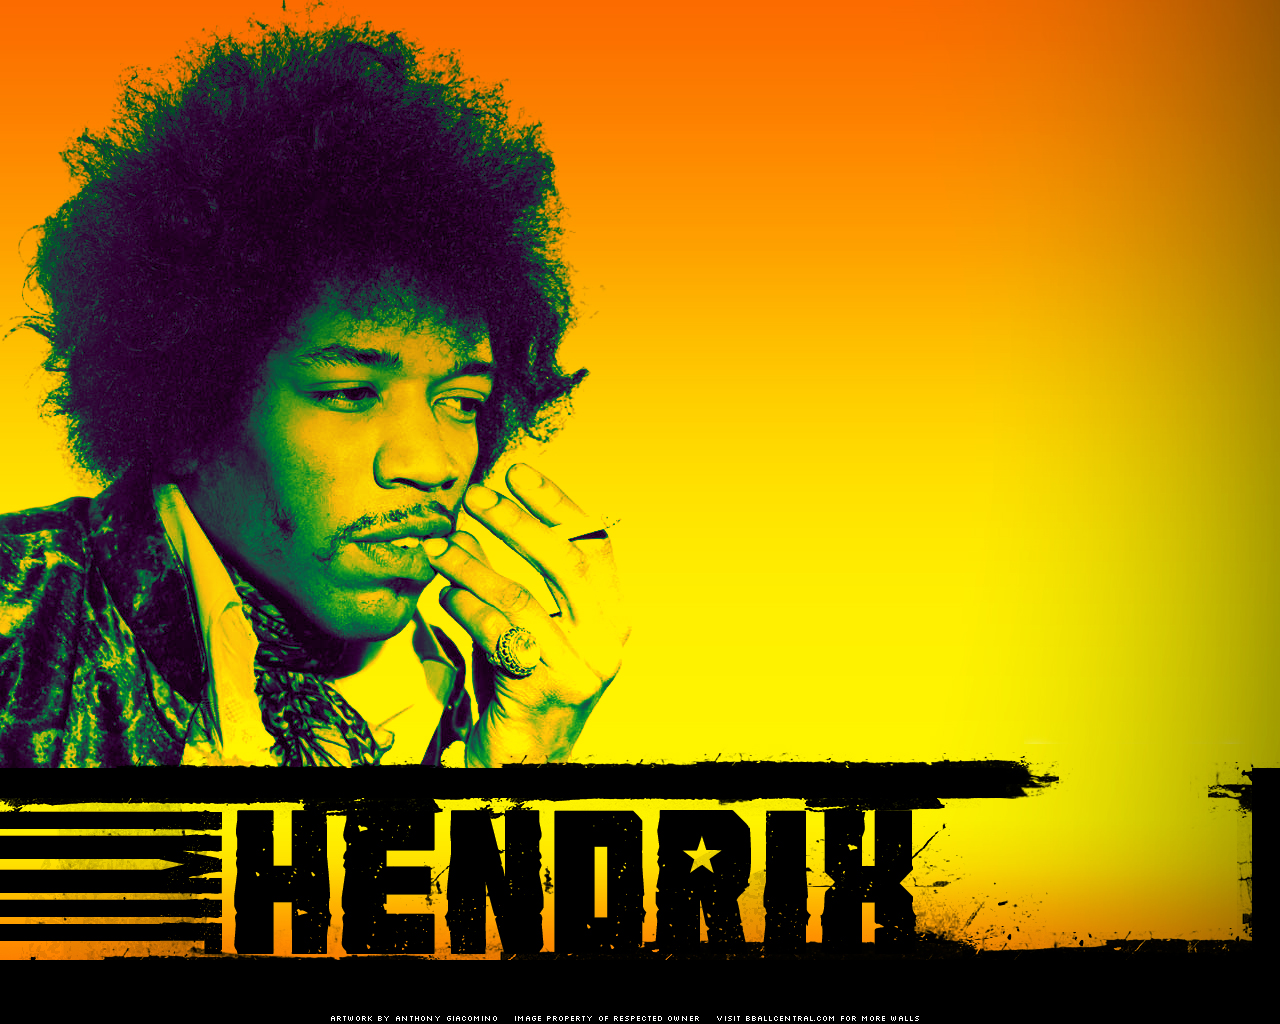 Jimi hendrix by anthony g on deviantart jimi hendrix by anthony g altavistaventures Images